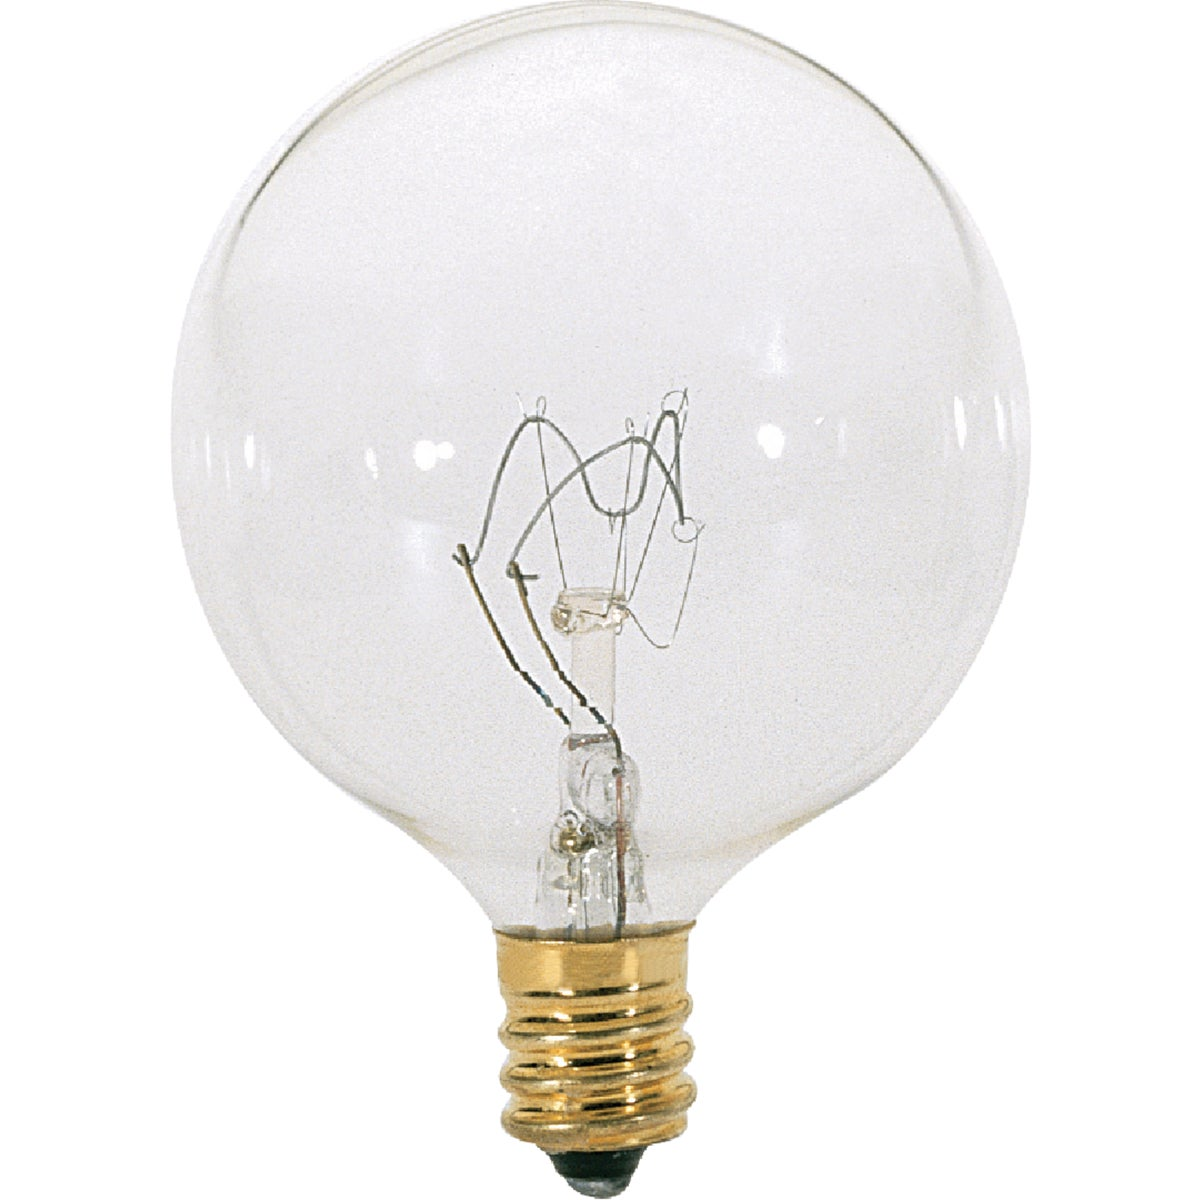 60W CLR 2-1/16GLOBE BULB - 23091 by G E Lighting